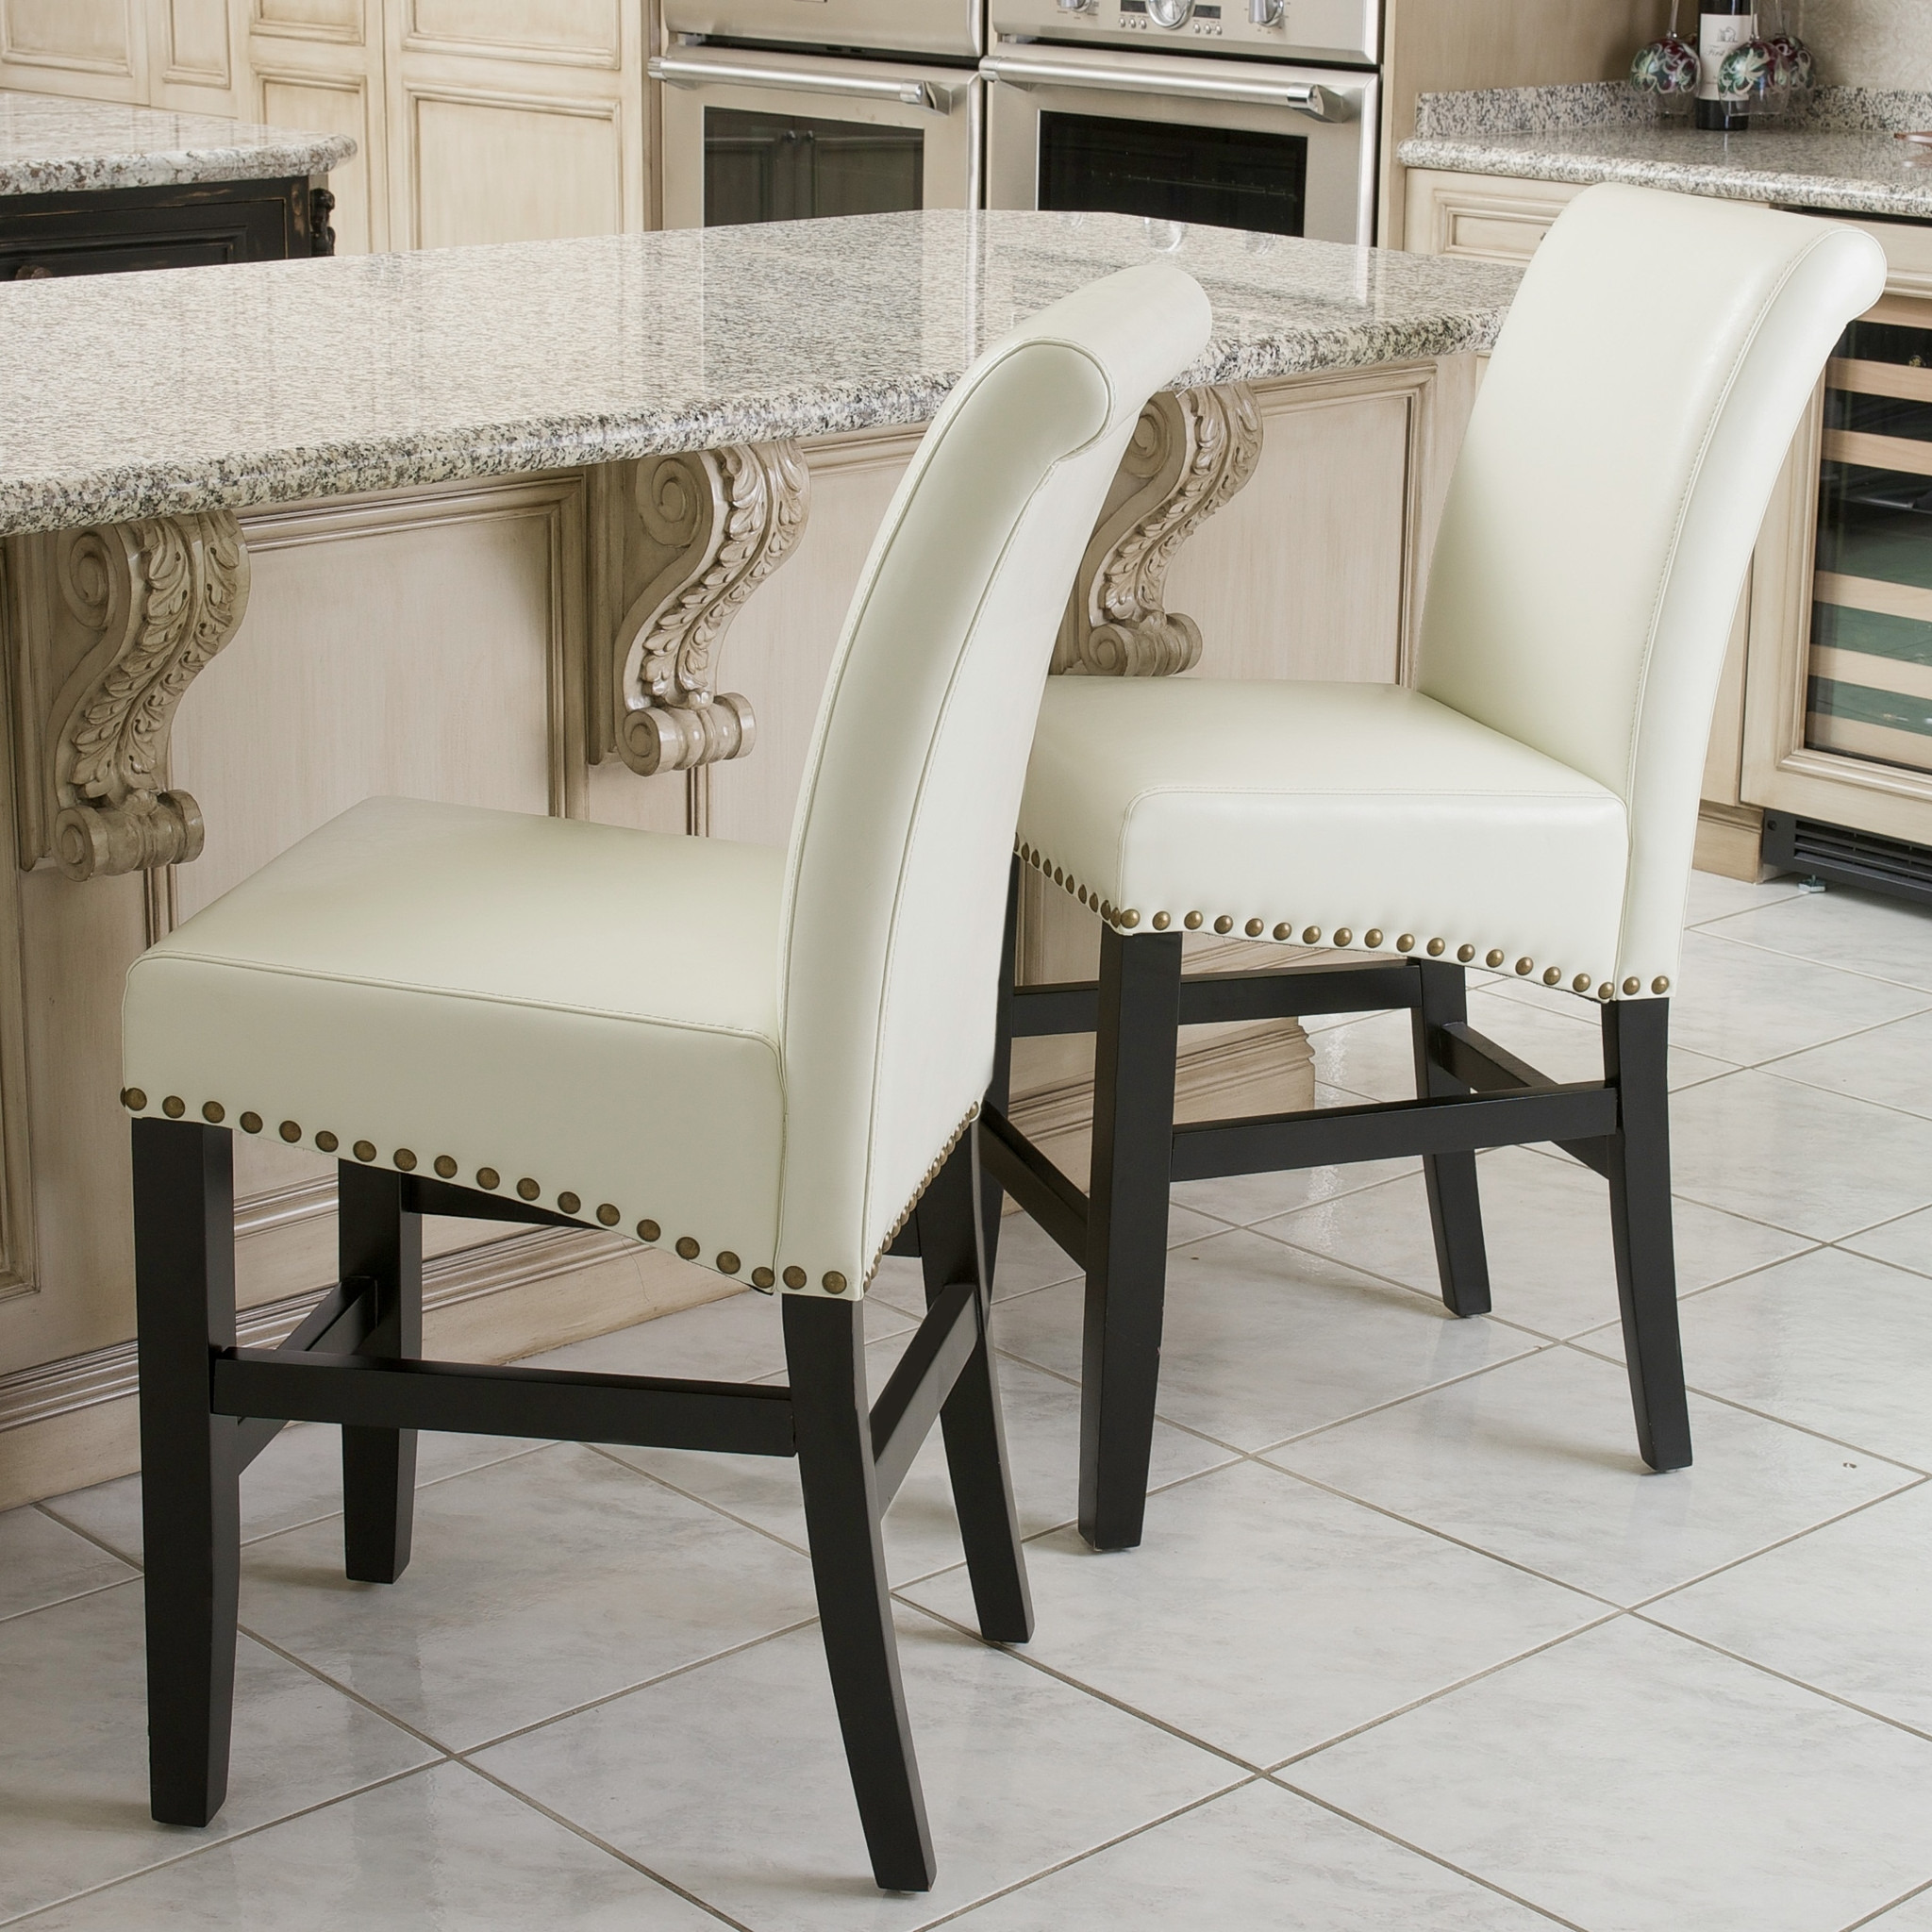 Ivory Leather Dining Chairs For Popular Impressive Ivory Leather Dining Room Chairs – Esescatrina (View 13 of 25)